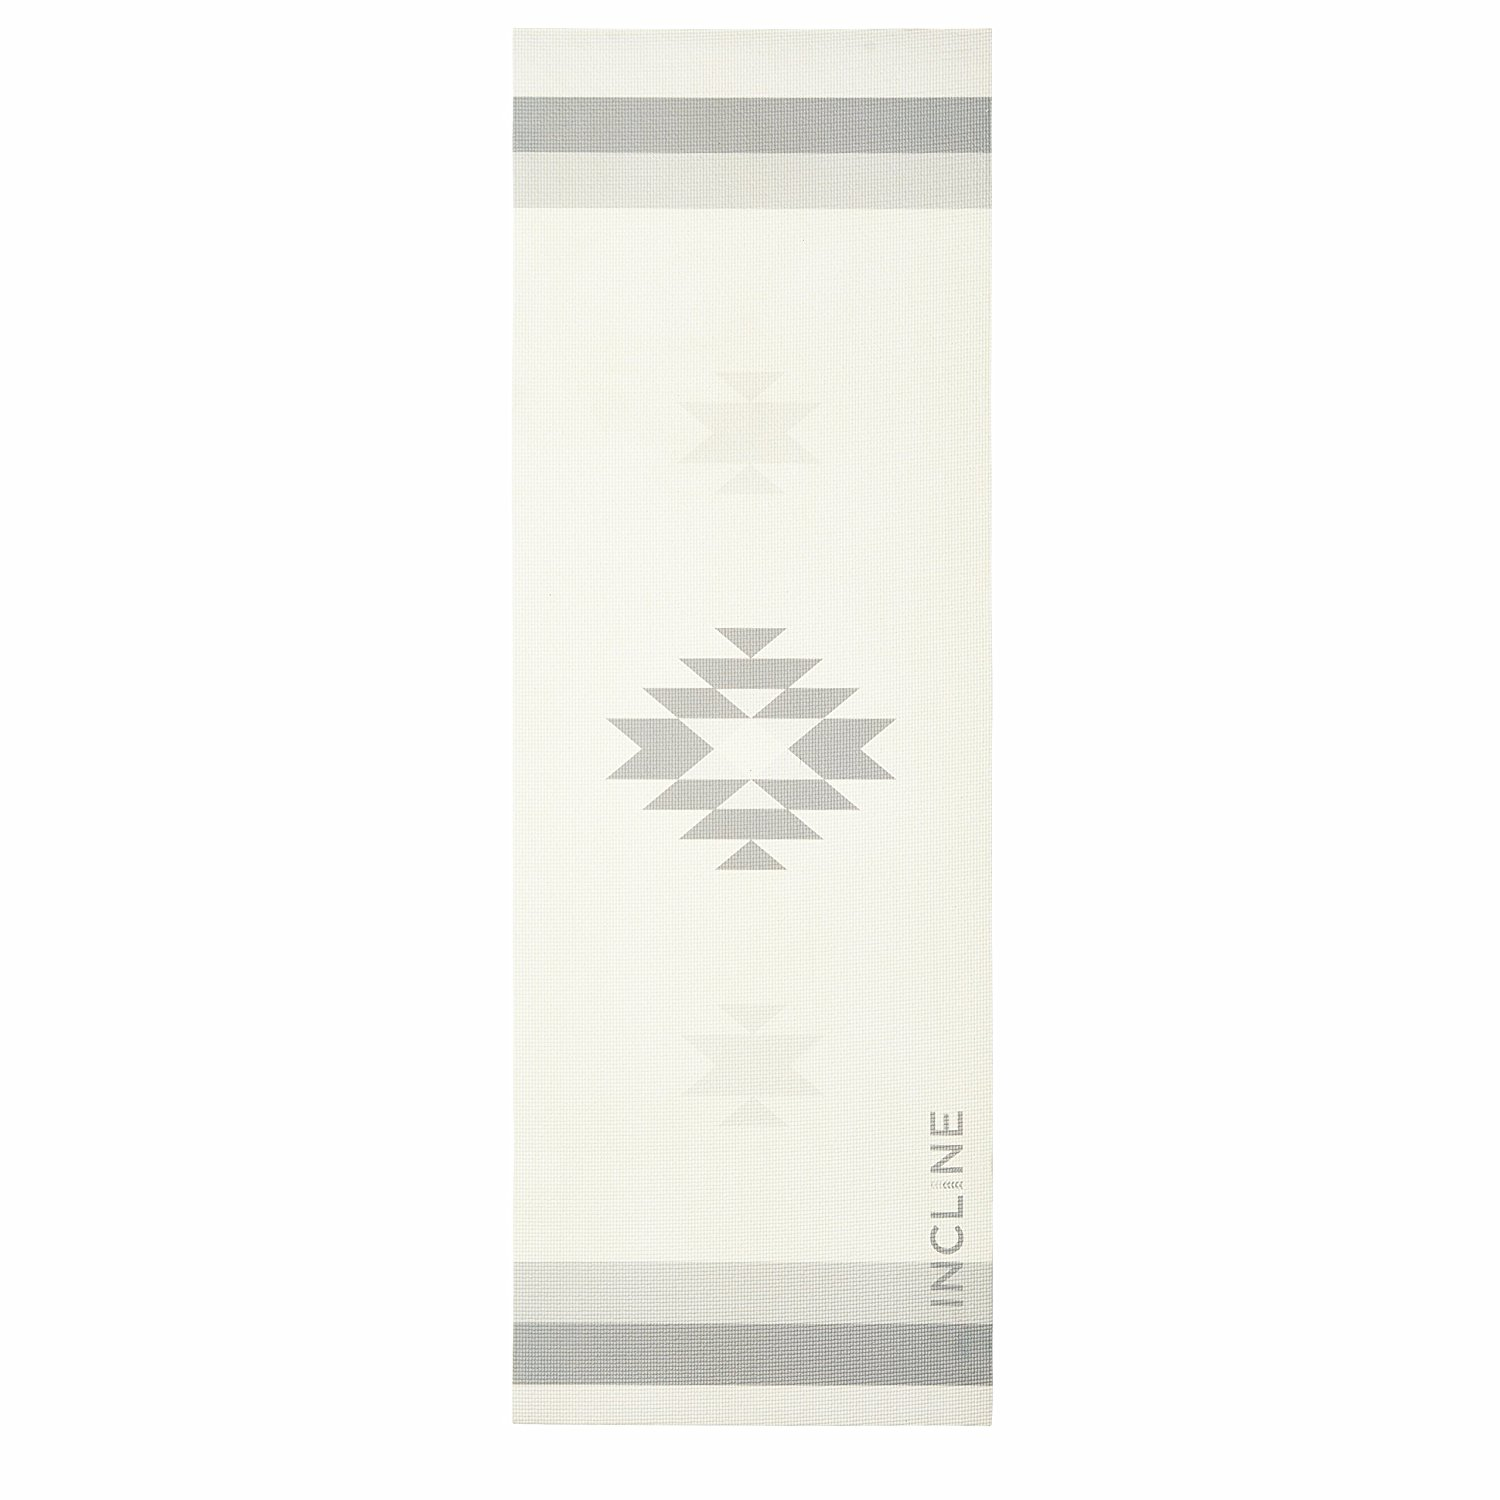 incline fit printed yoga mat aztec asana